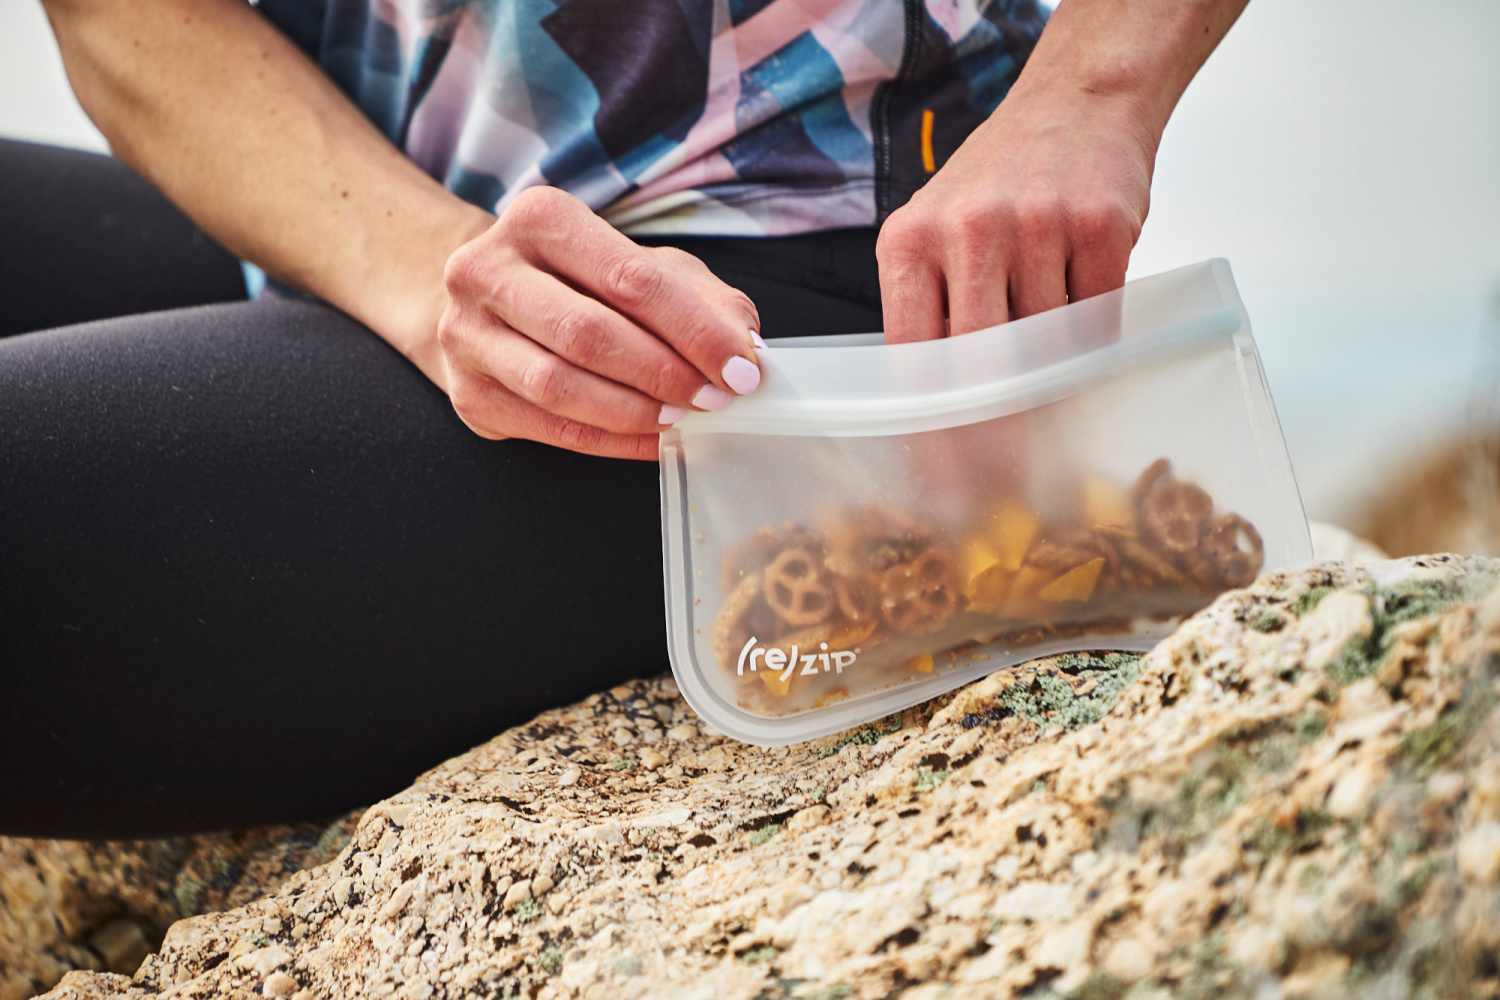 Looking for some new snacks for your hike? Check out this hiking snacks youtube video will 11 new hiking food ideas! www.amandaoutside.com